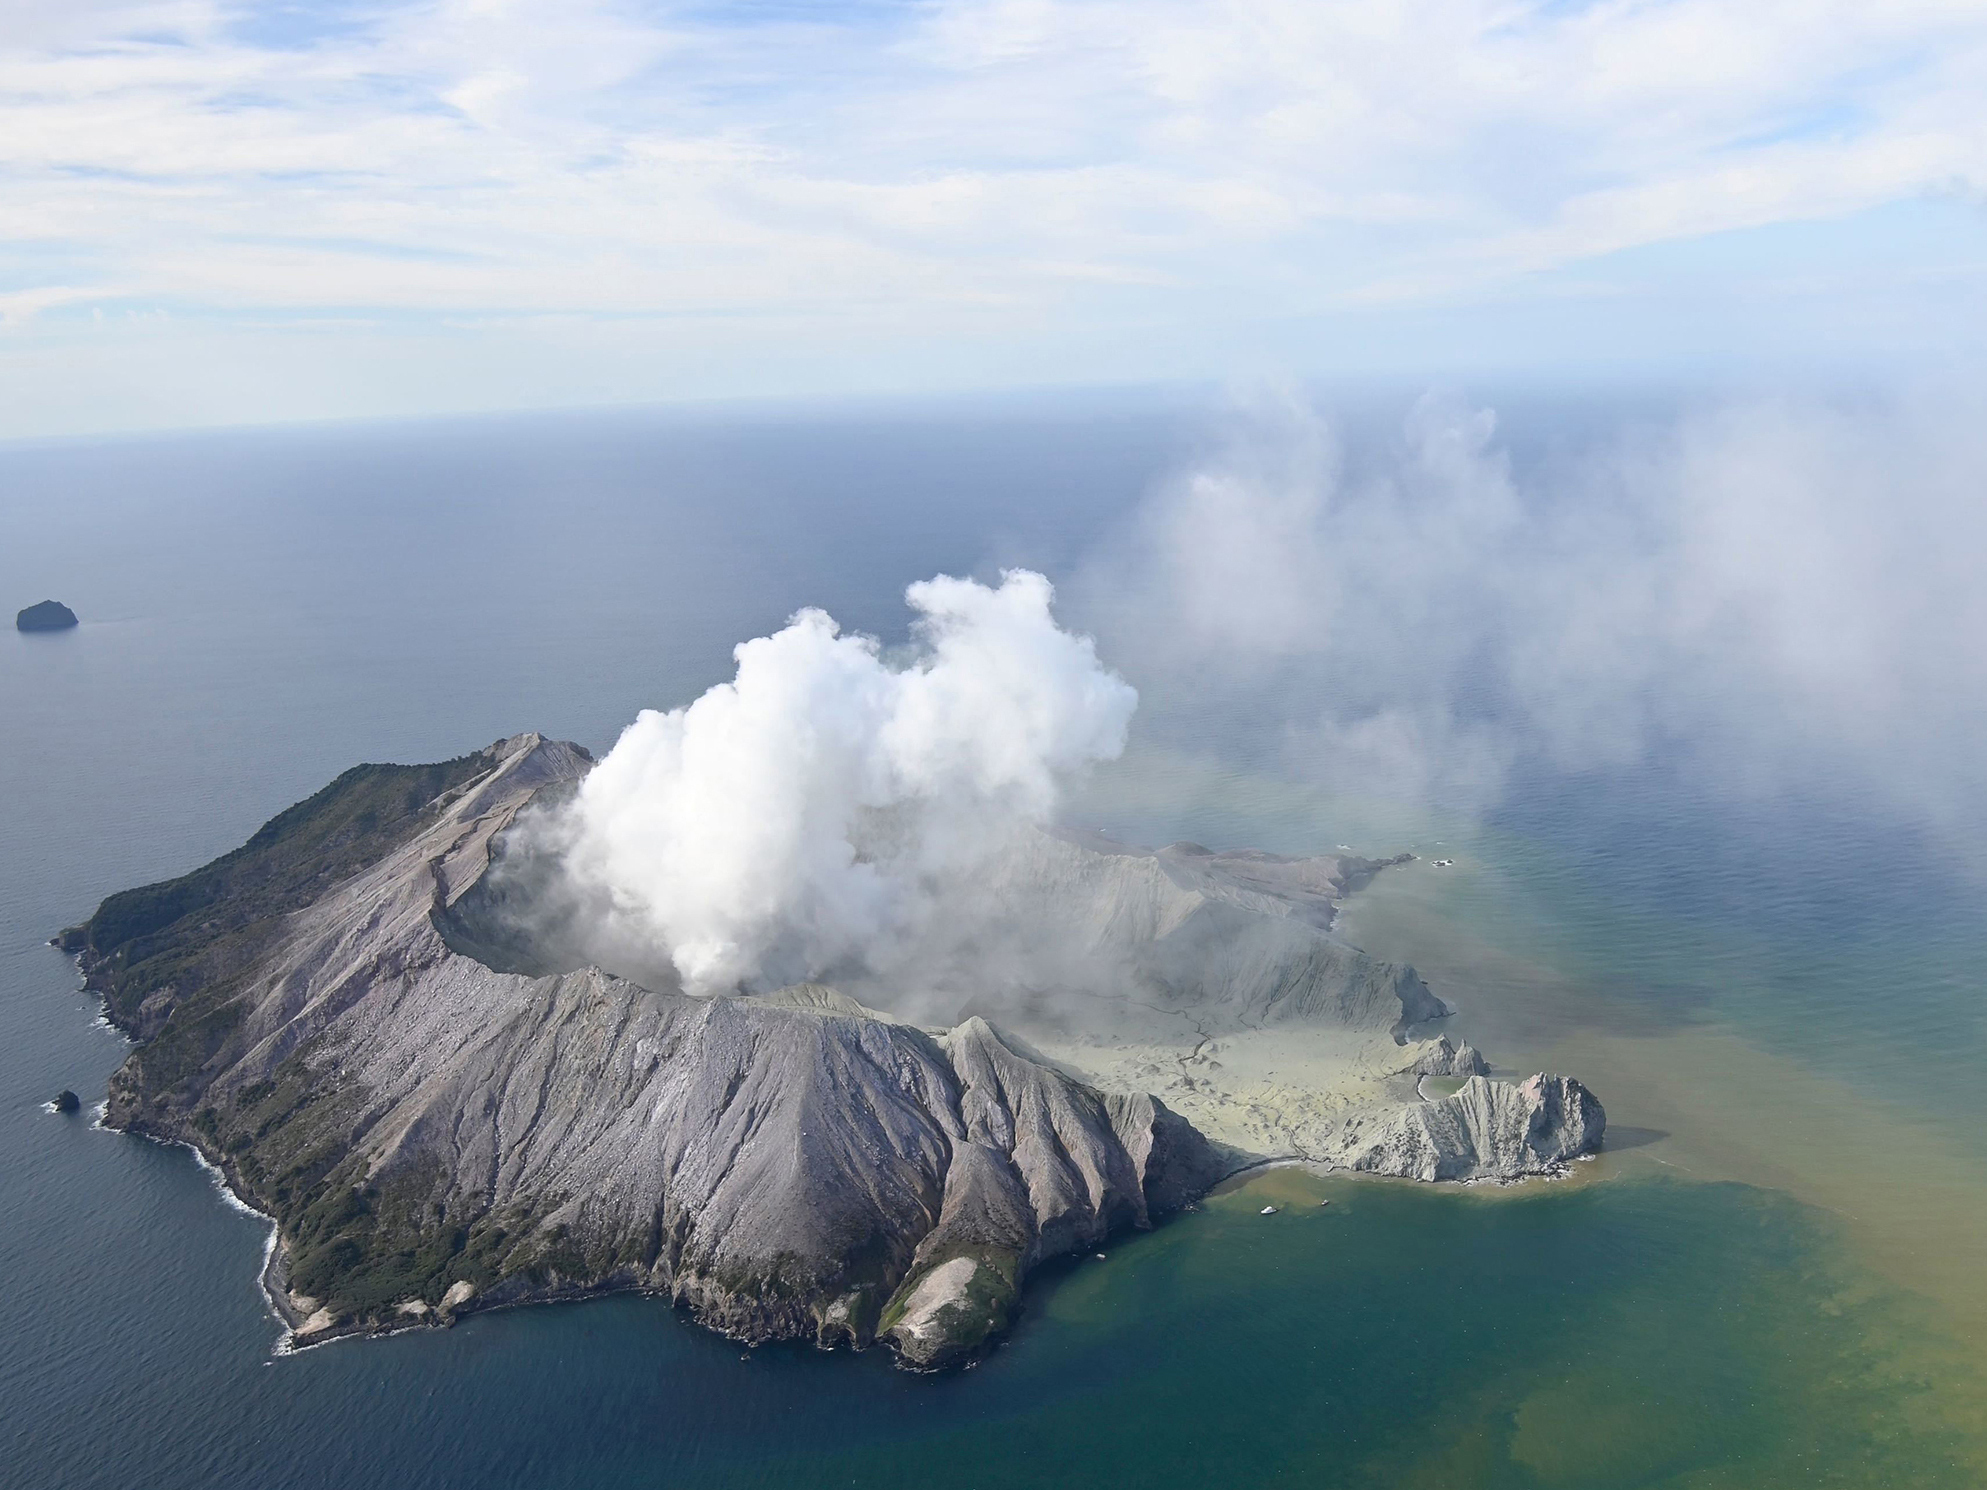 At Least 5 Dead After Volcano Erupts Off New Zealand Coast